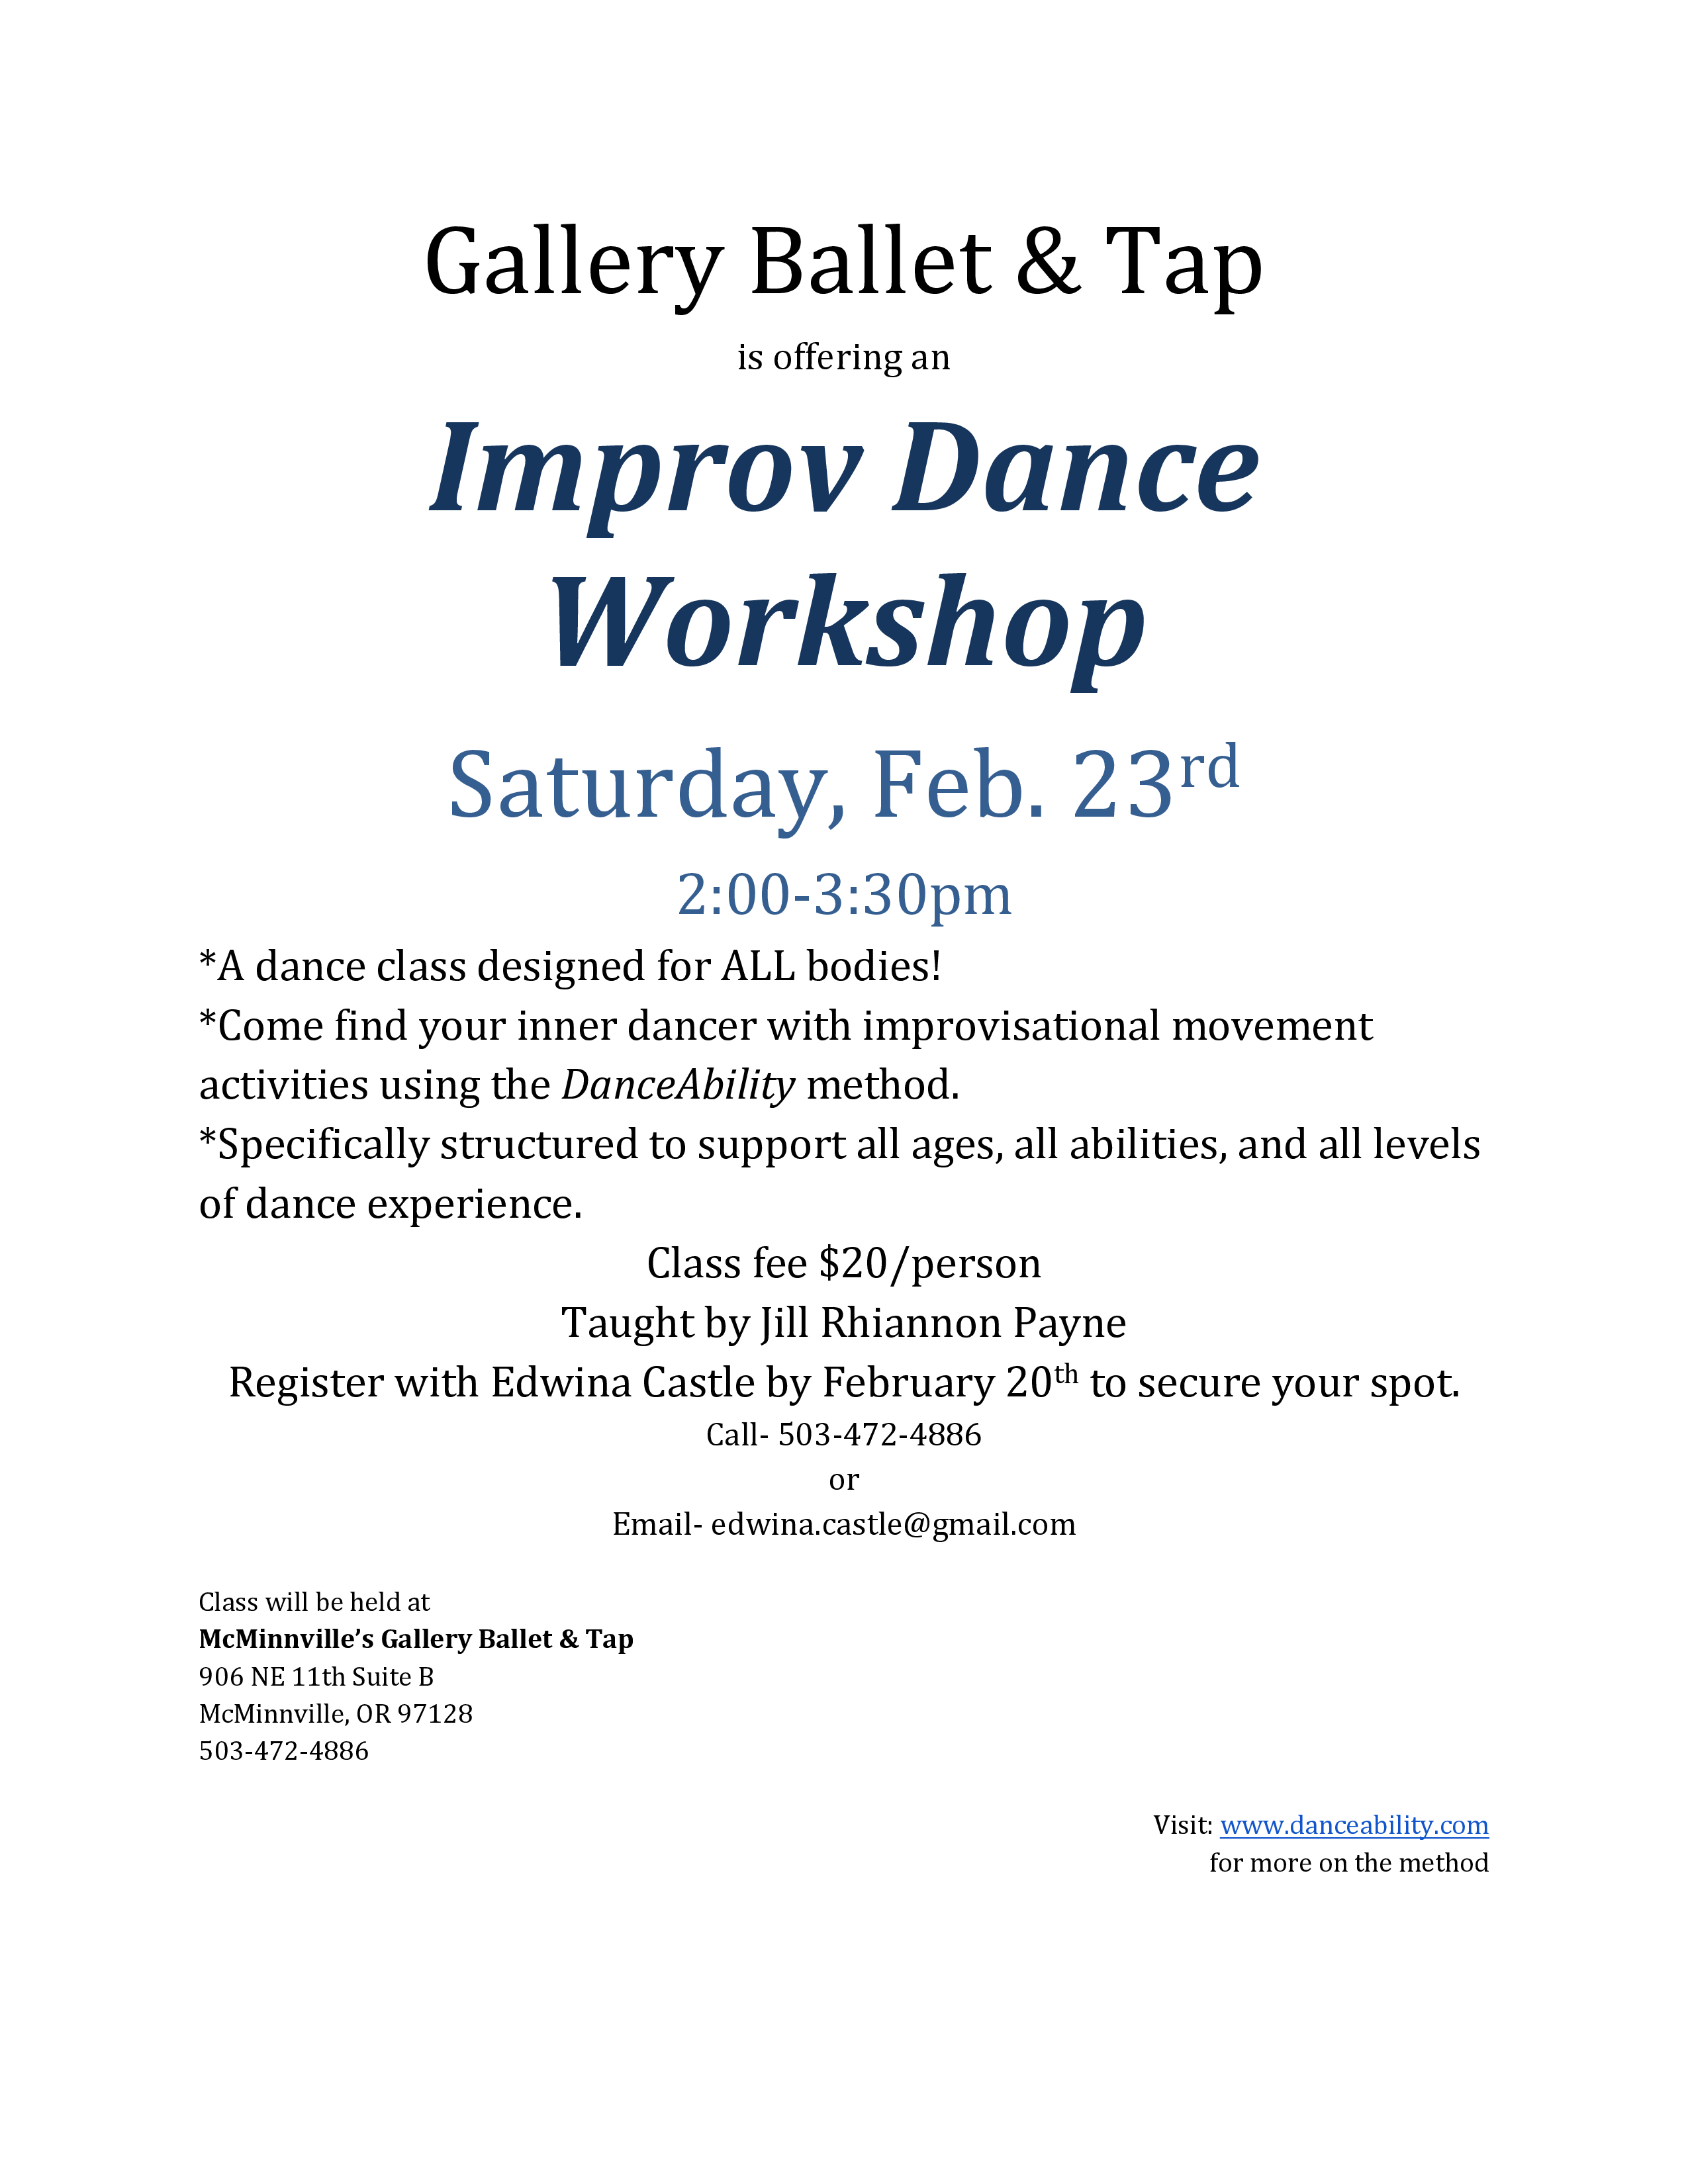 Improv Dance Workshop